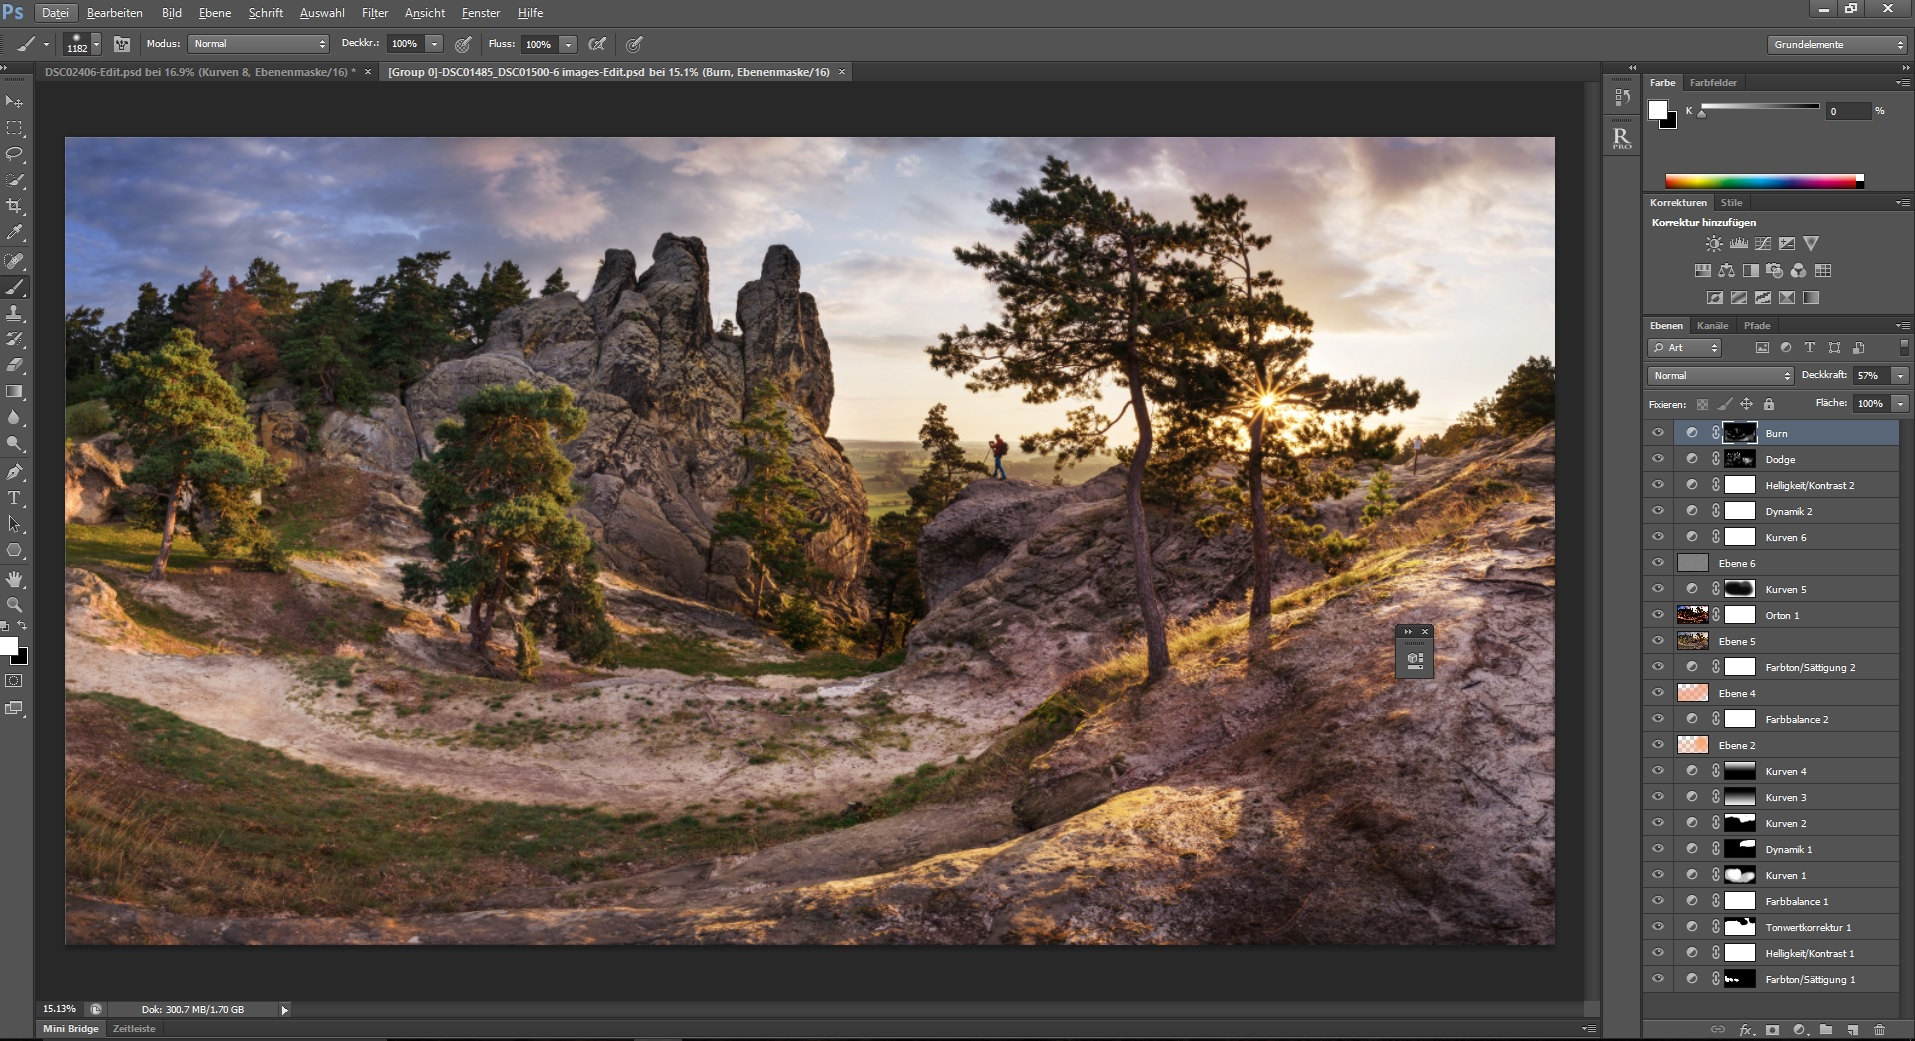 Rule number 8: Use a photo editing software! -